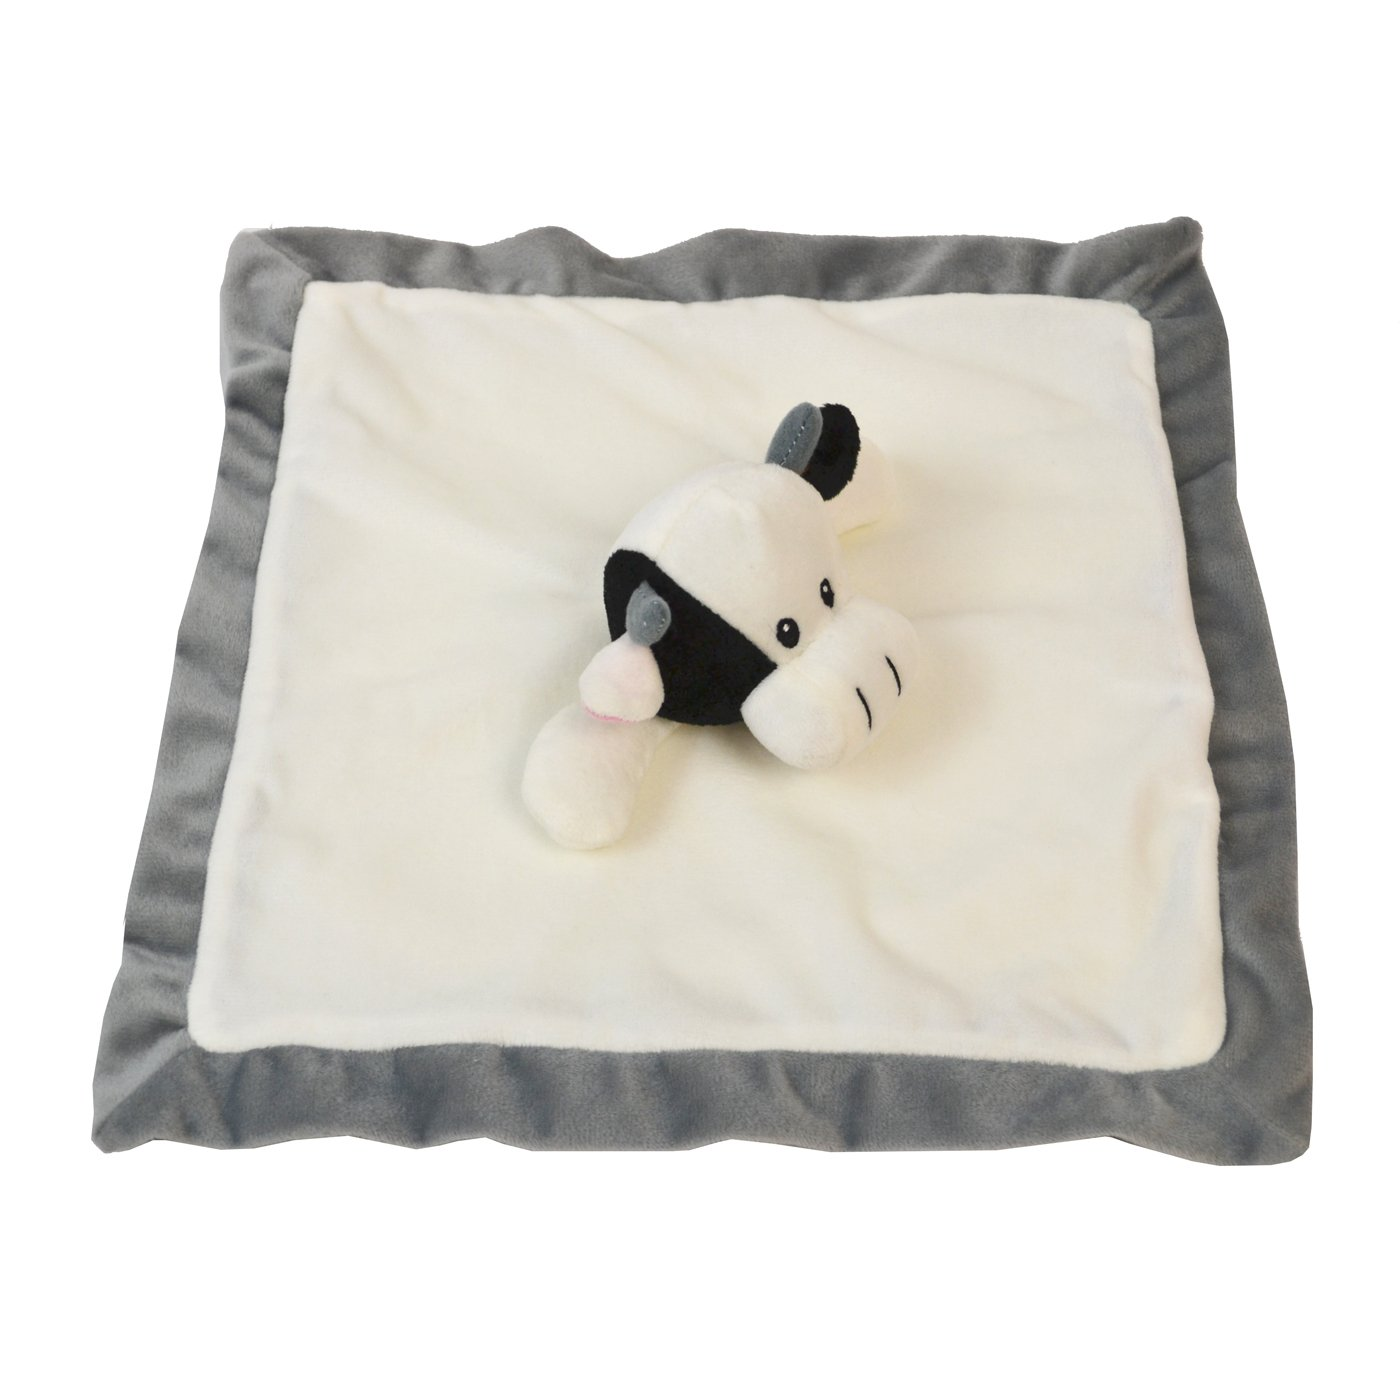 Lovey Security Blanket 12 inch Square Stuffed Animal Baby Blankie for Girls or Boys (Cow) by Baberoo product image